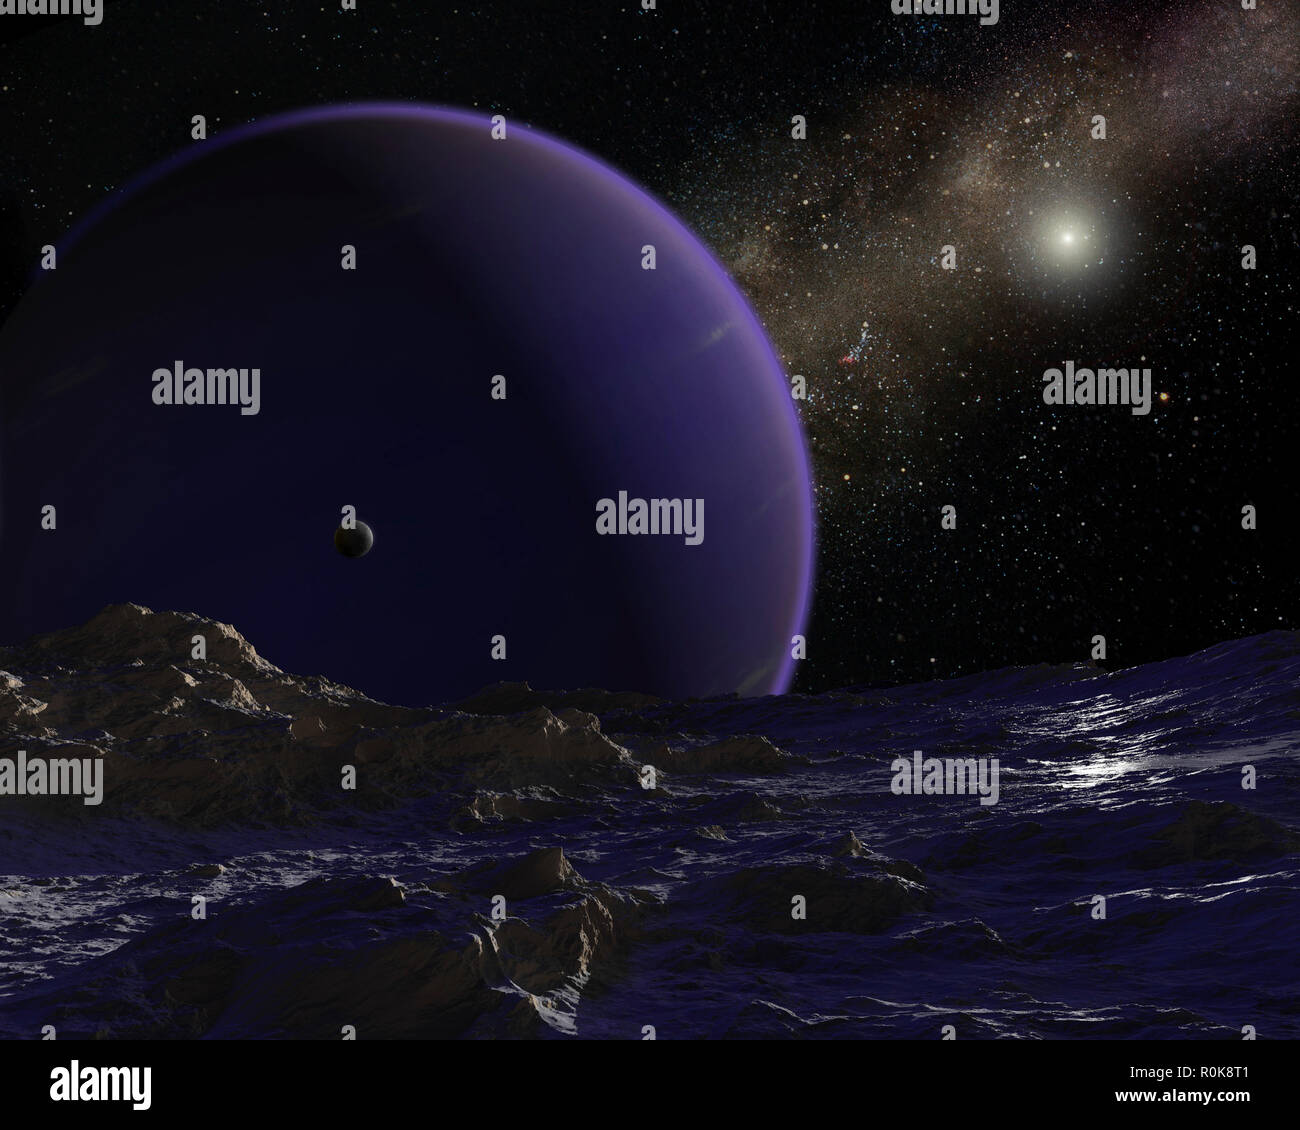 Artist's concept of hypothetical Planet 9. - Stock Image